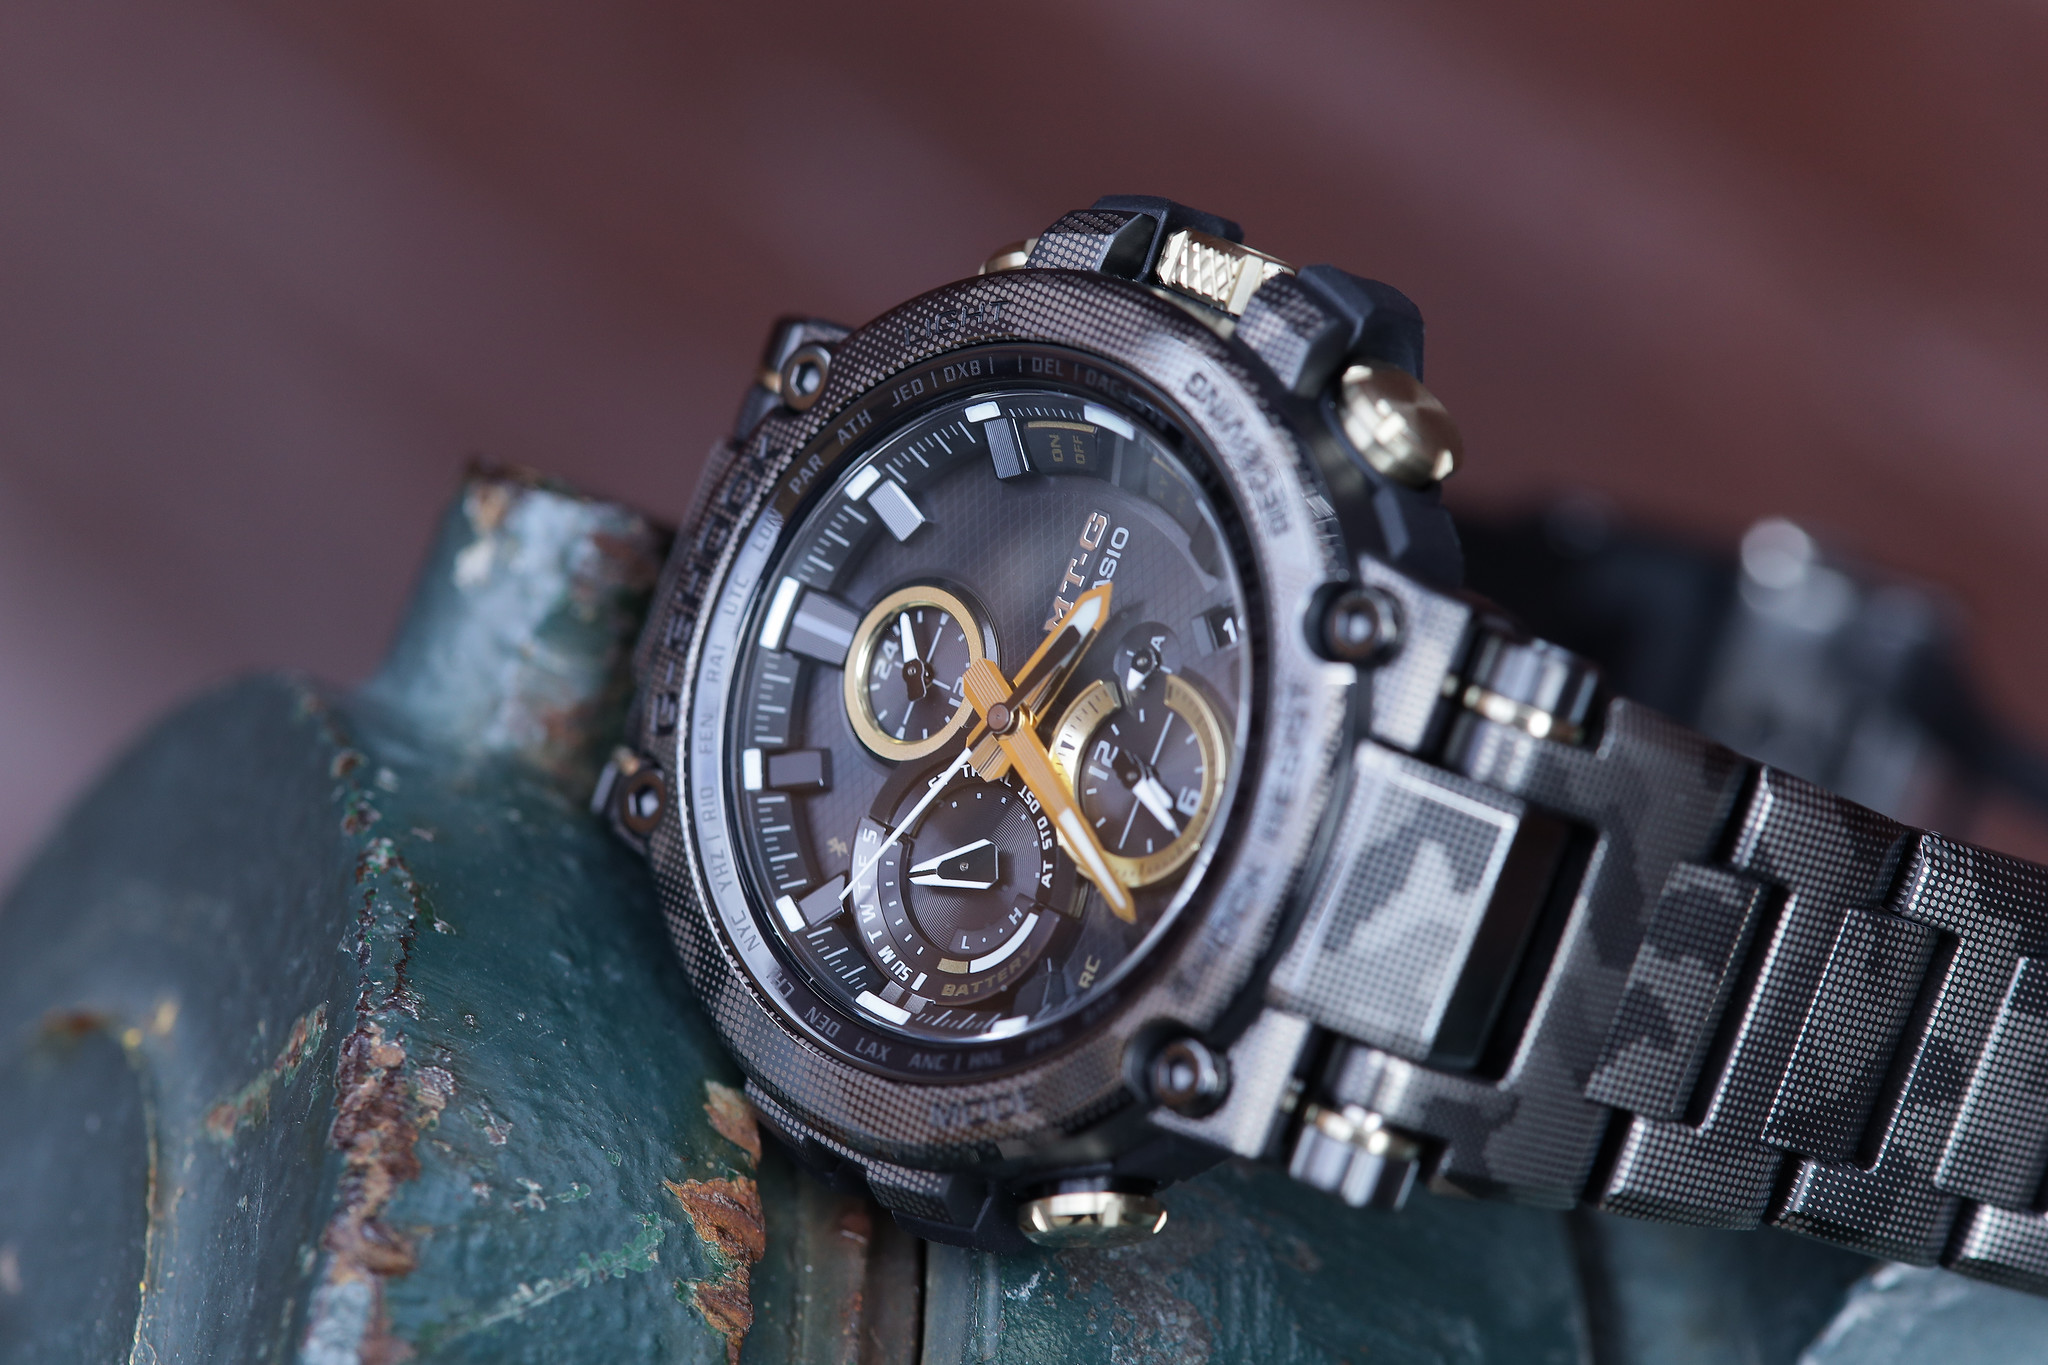 MT-G Camouflage Print Limited Edition by G-Shock